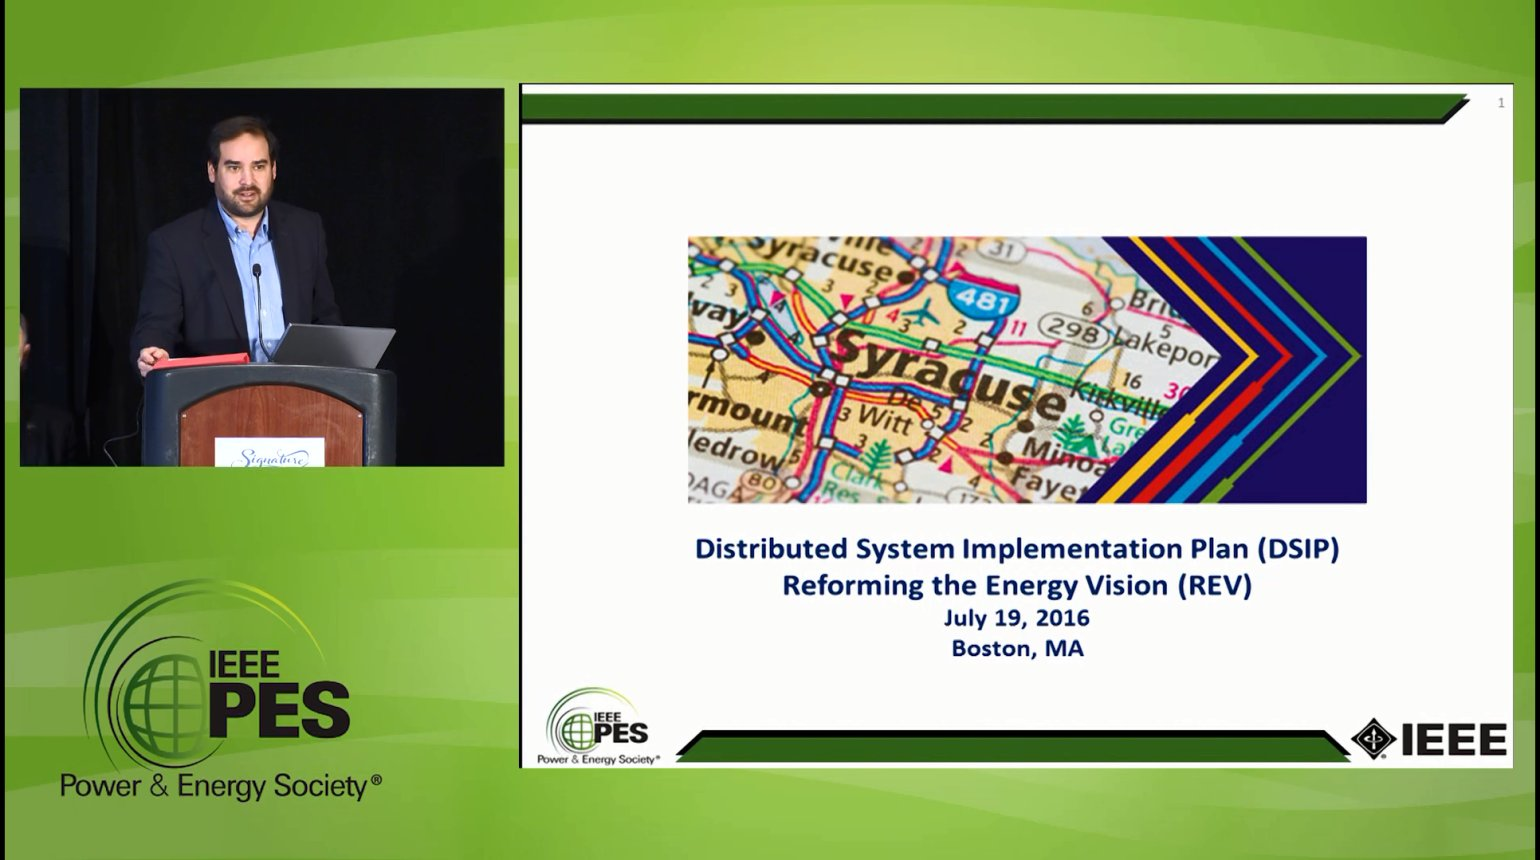 Late Breaking News - Distributed System Implementation Plan (DSIP) Reforming the Energy Vision (REV) - Video